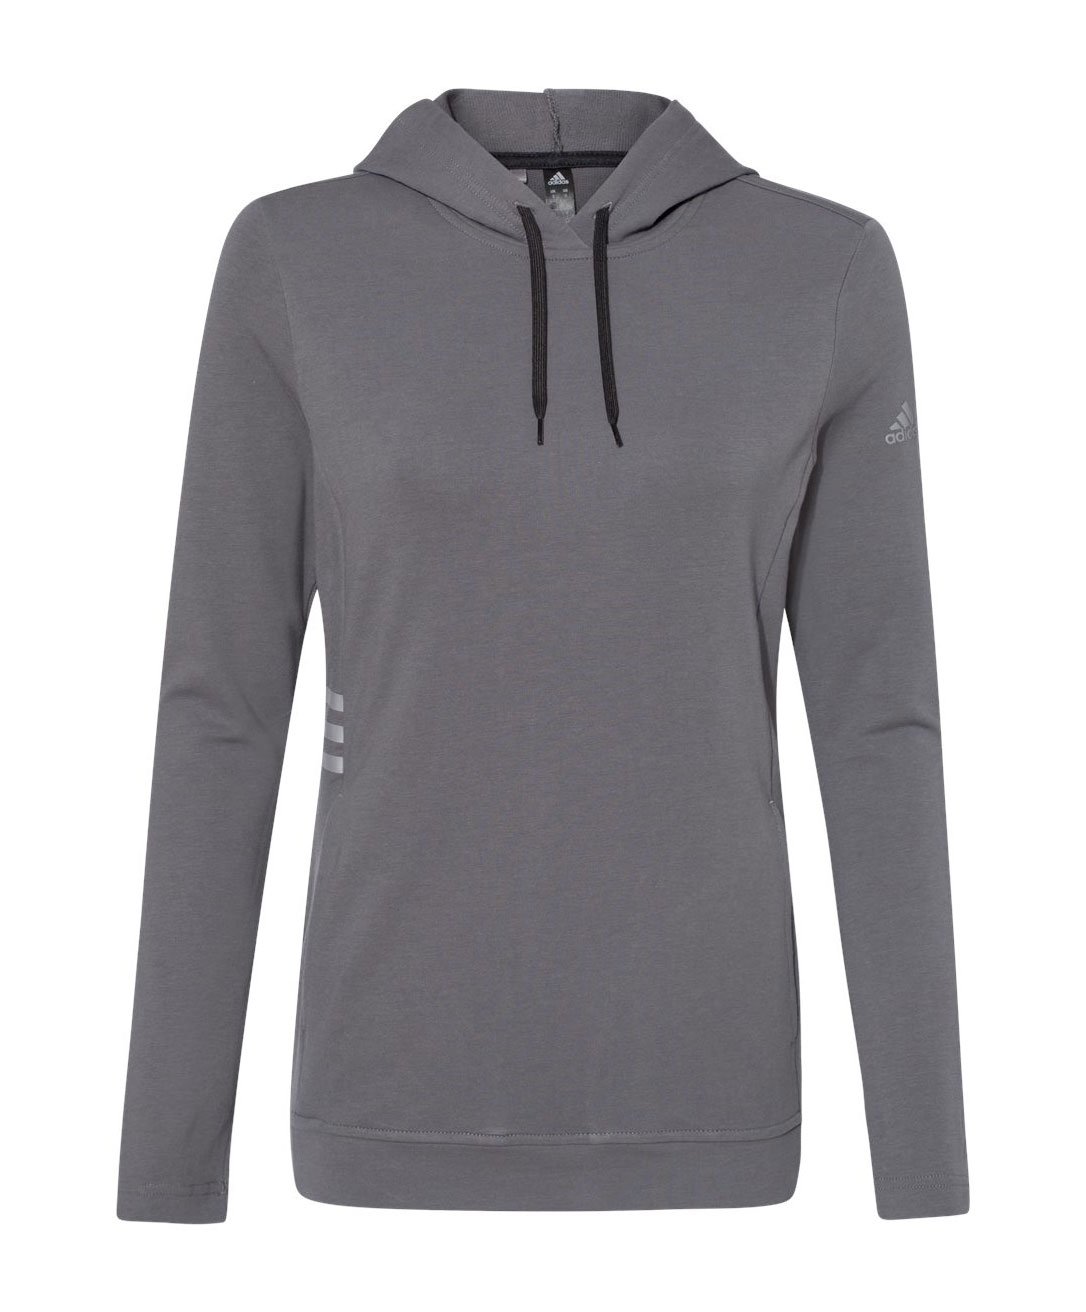 Adidas Womens Lightweight Hooded Sweatshirt